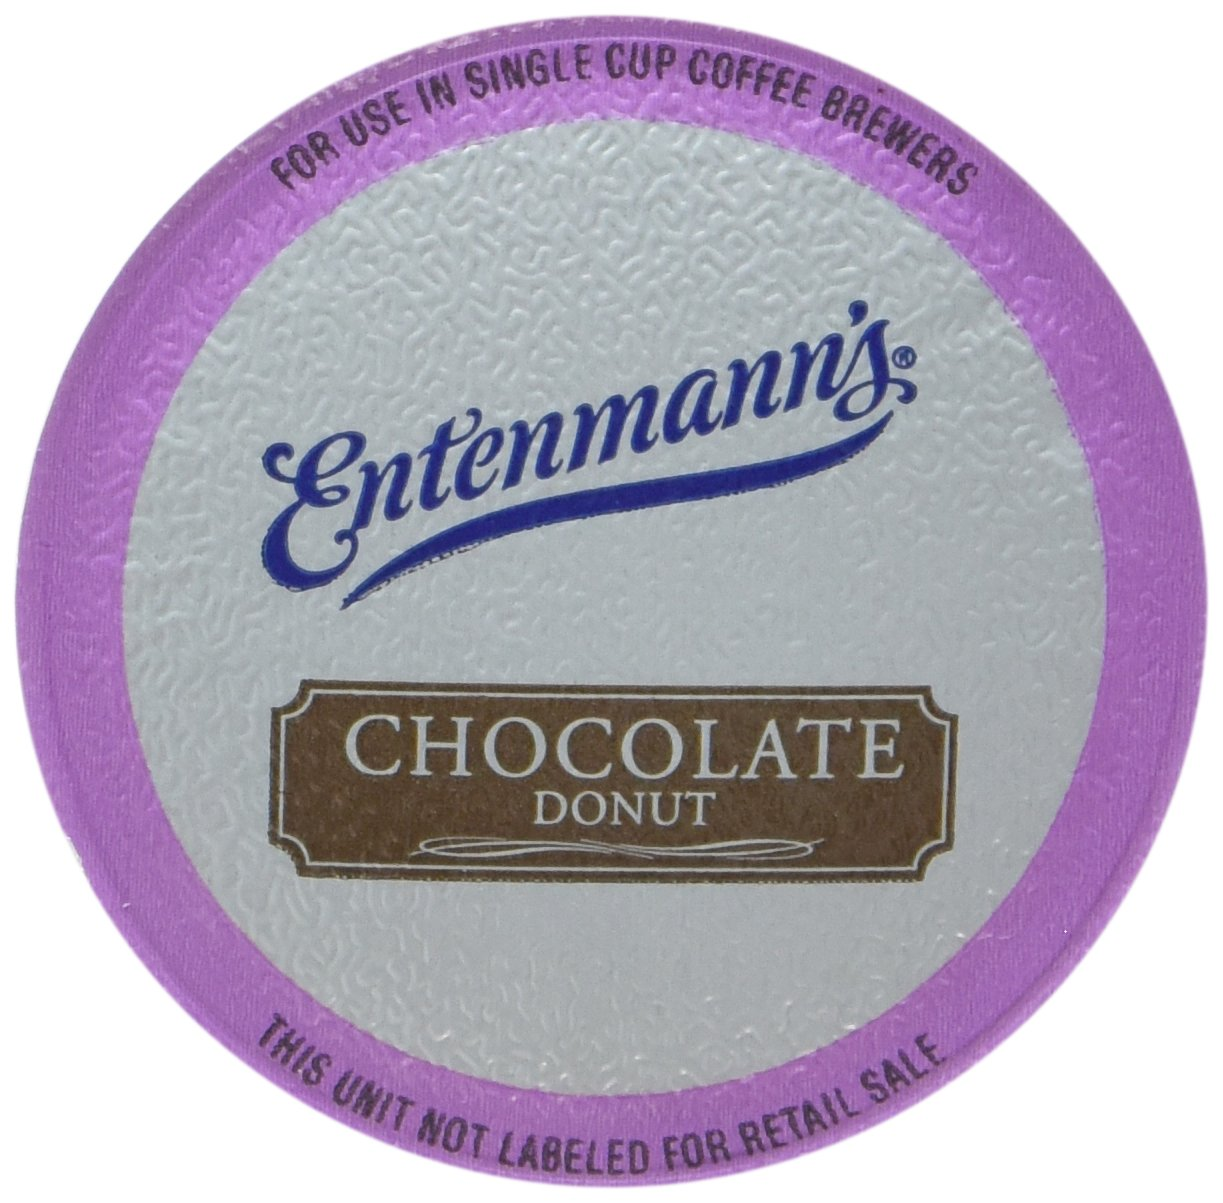 Entenmann's Chocolate Donut Flavor K-Cup Coffee, 2/10 ct boxes